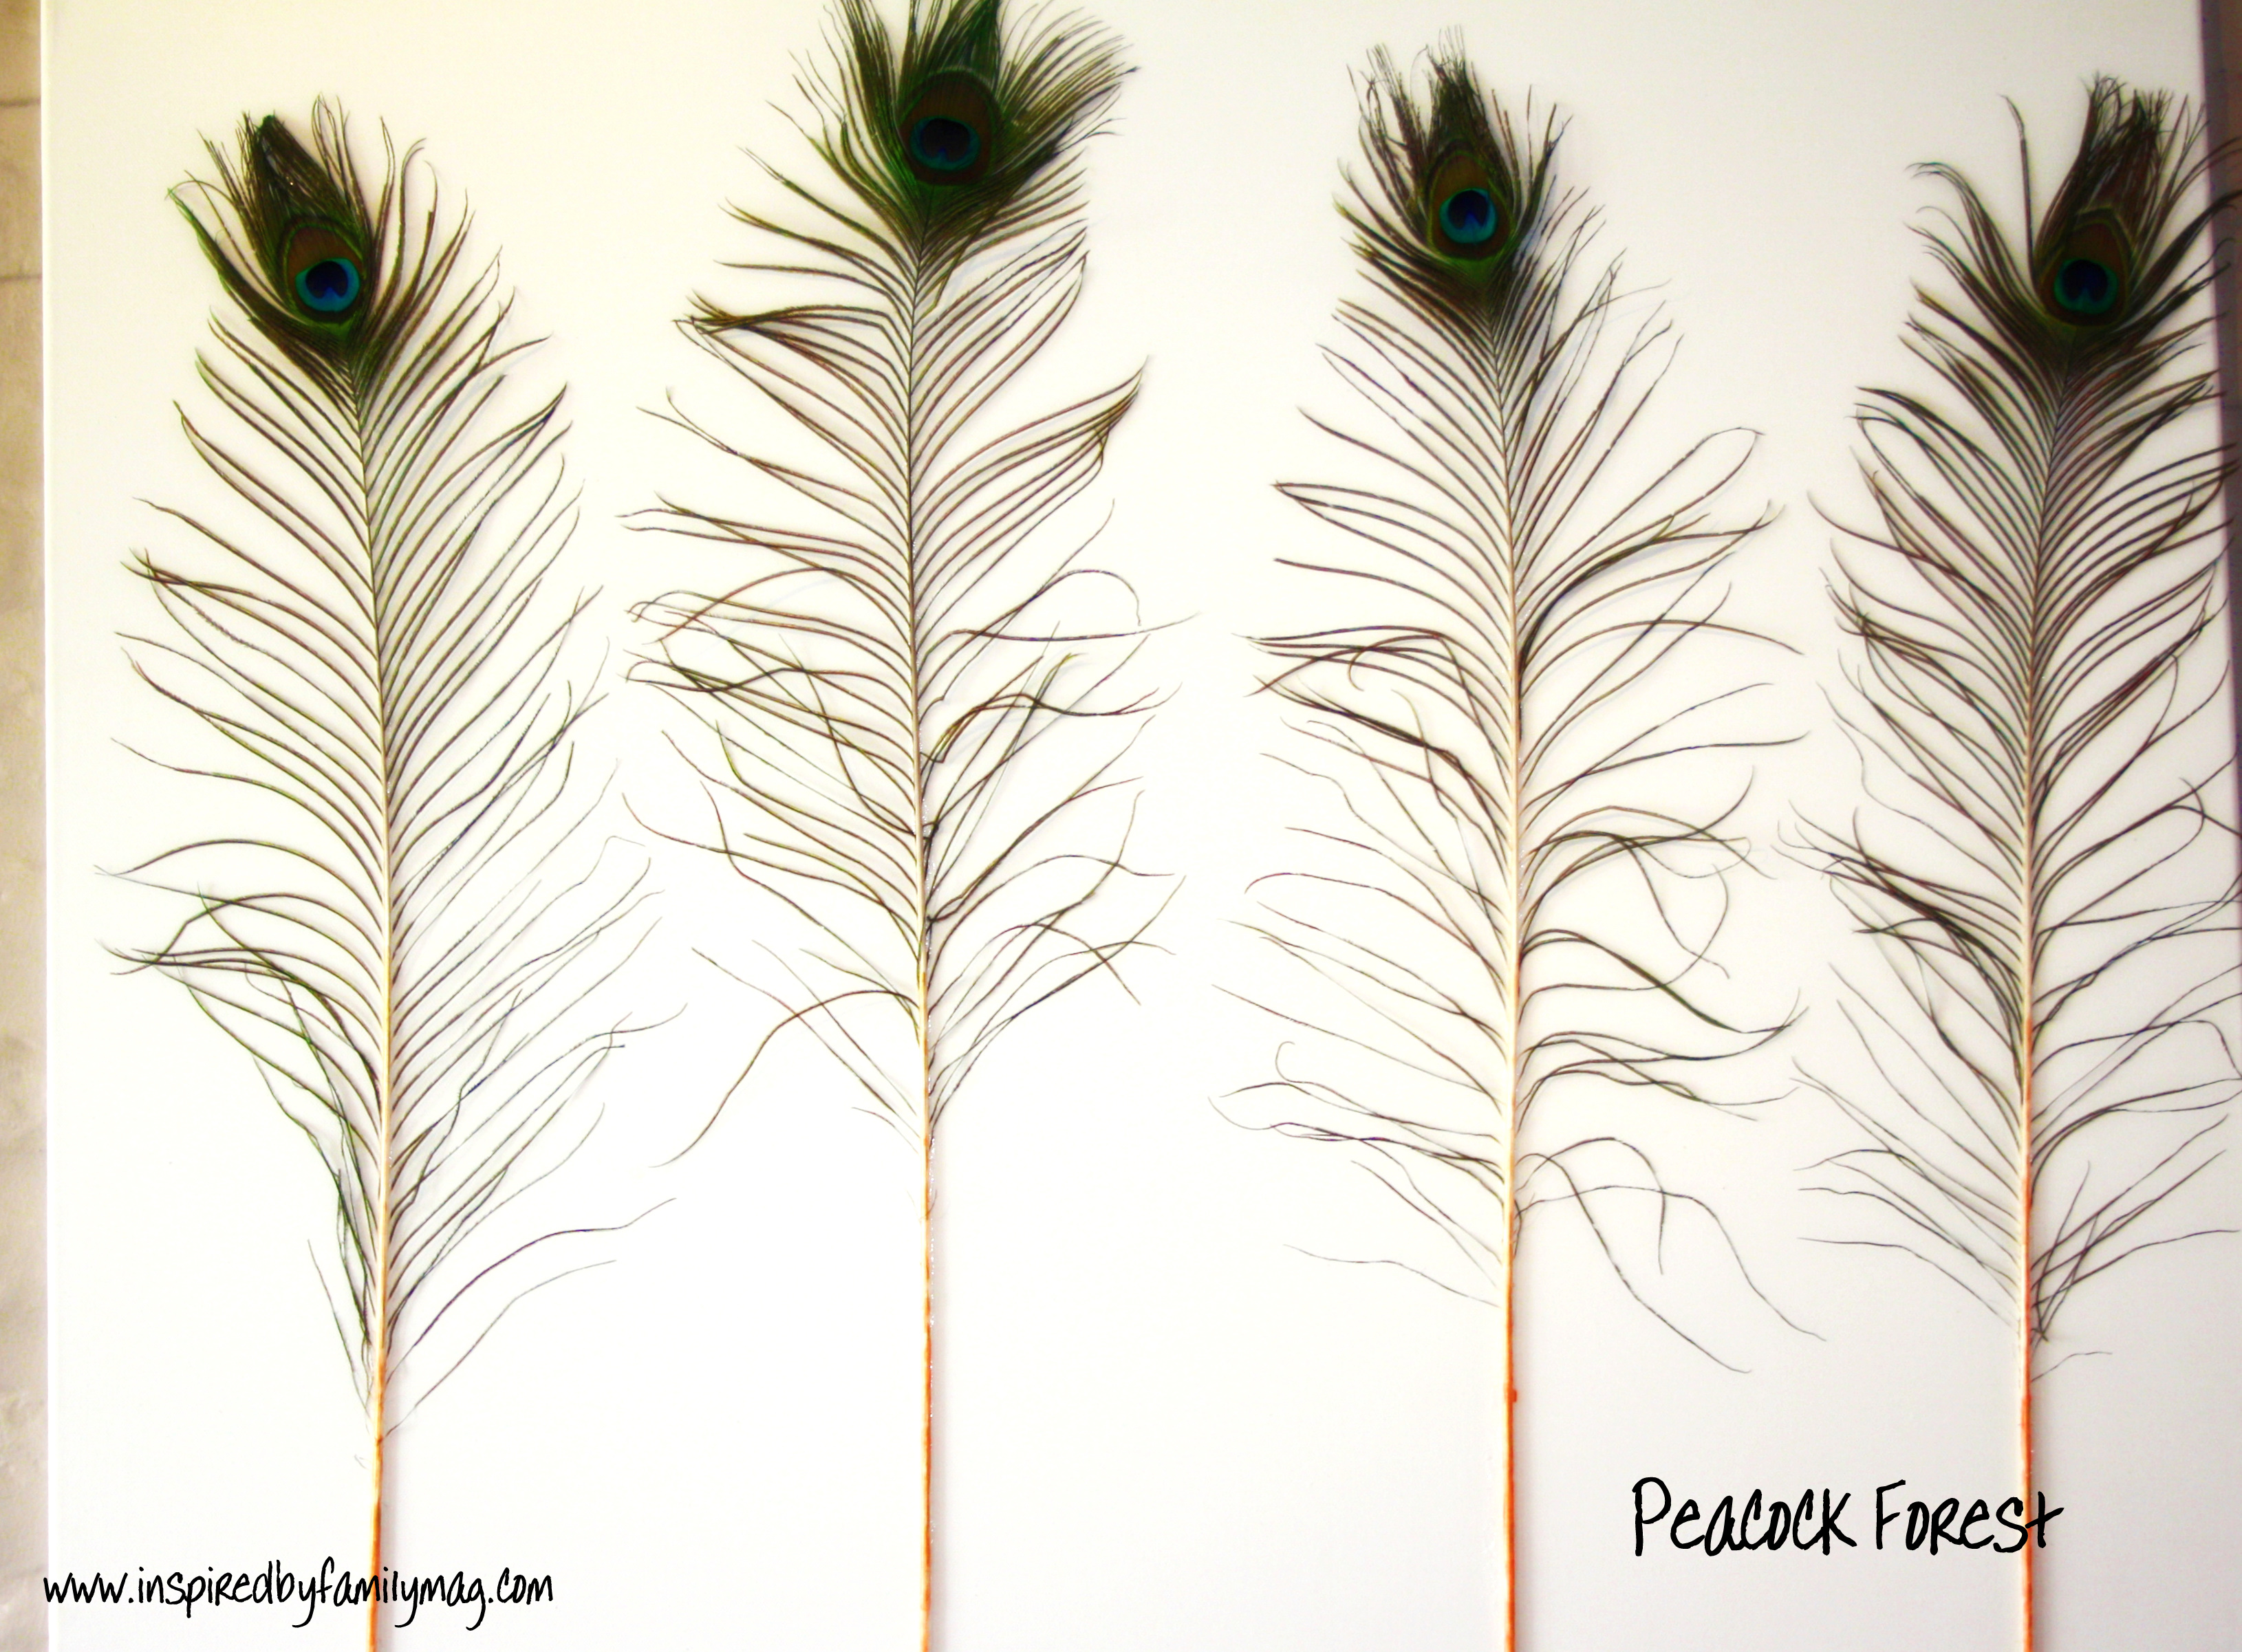 DIY Peacock Feather Art You Just Need Featherscanvas Glue And Some Paint For The Background